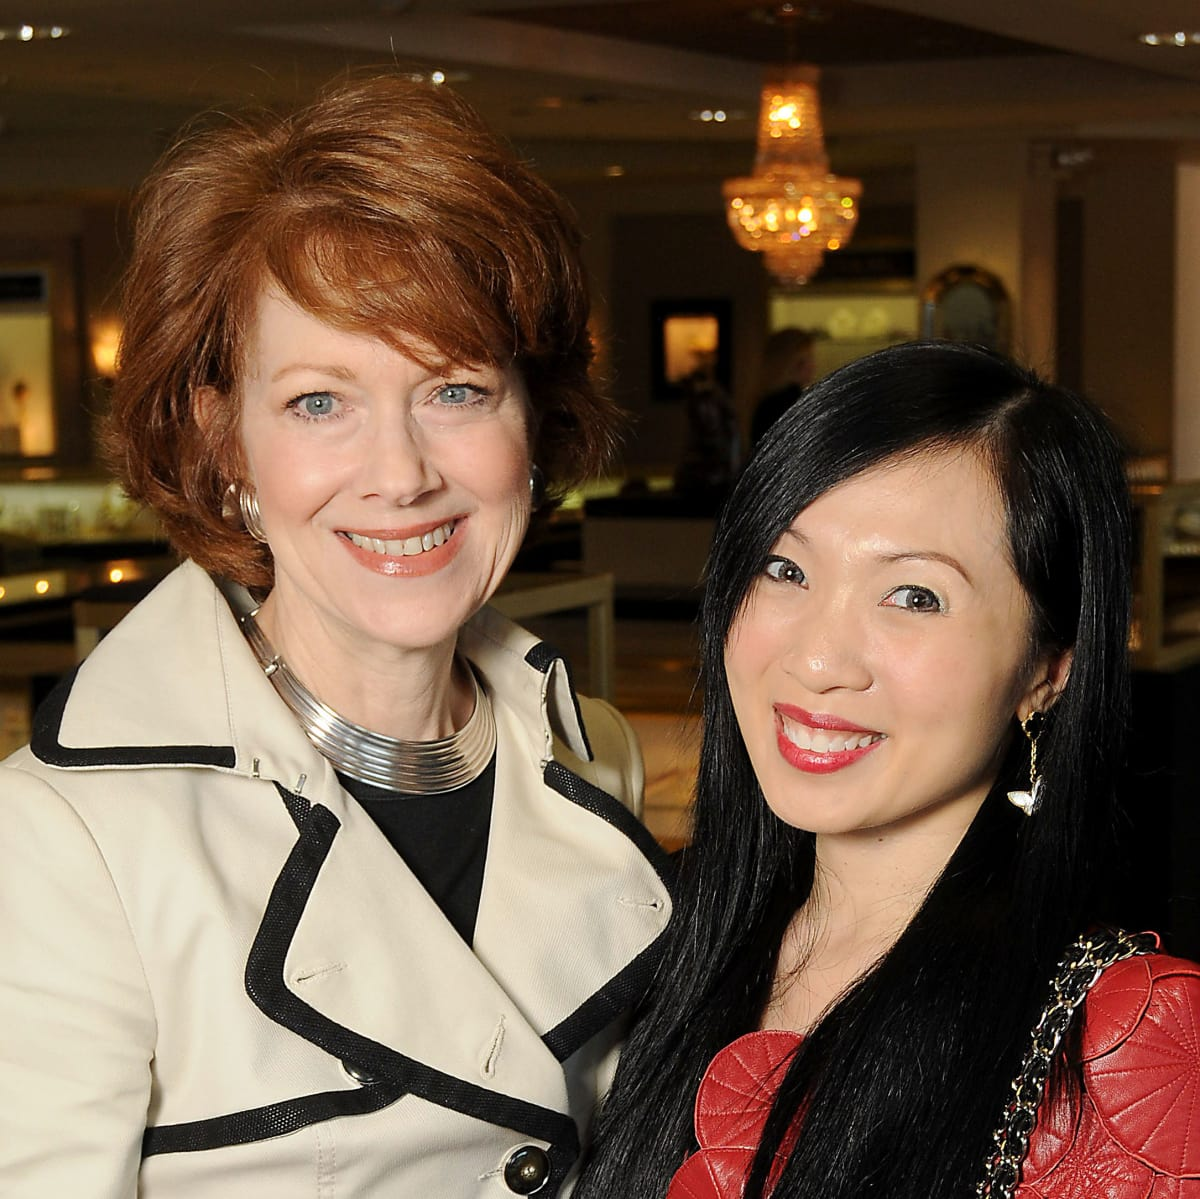 HGO Ladies Lunch April Lykos and Connie Kwan-Wong